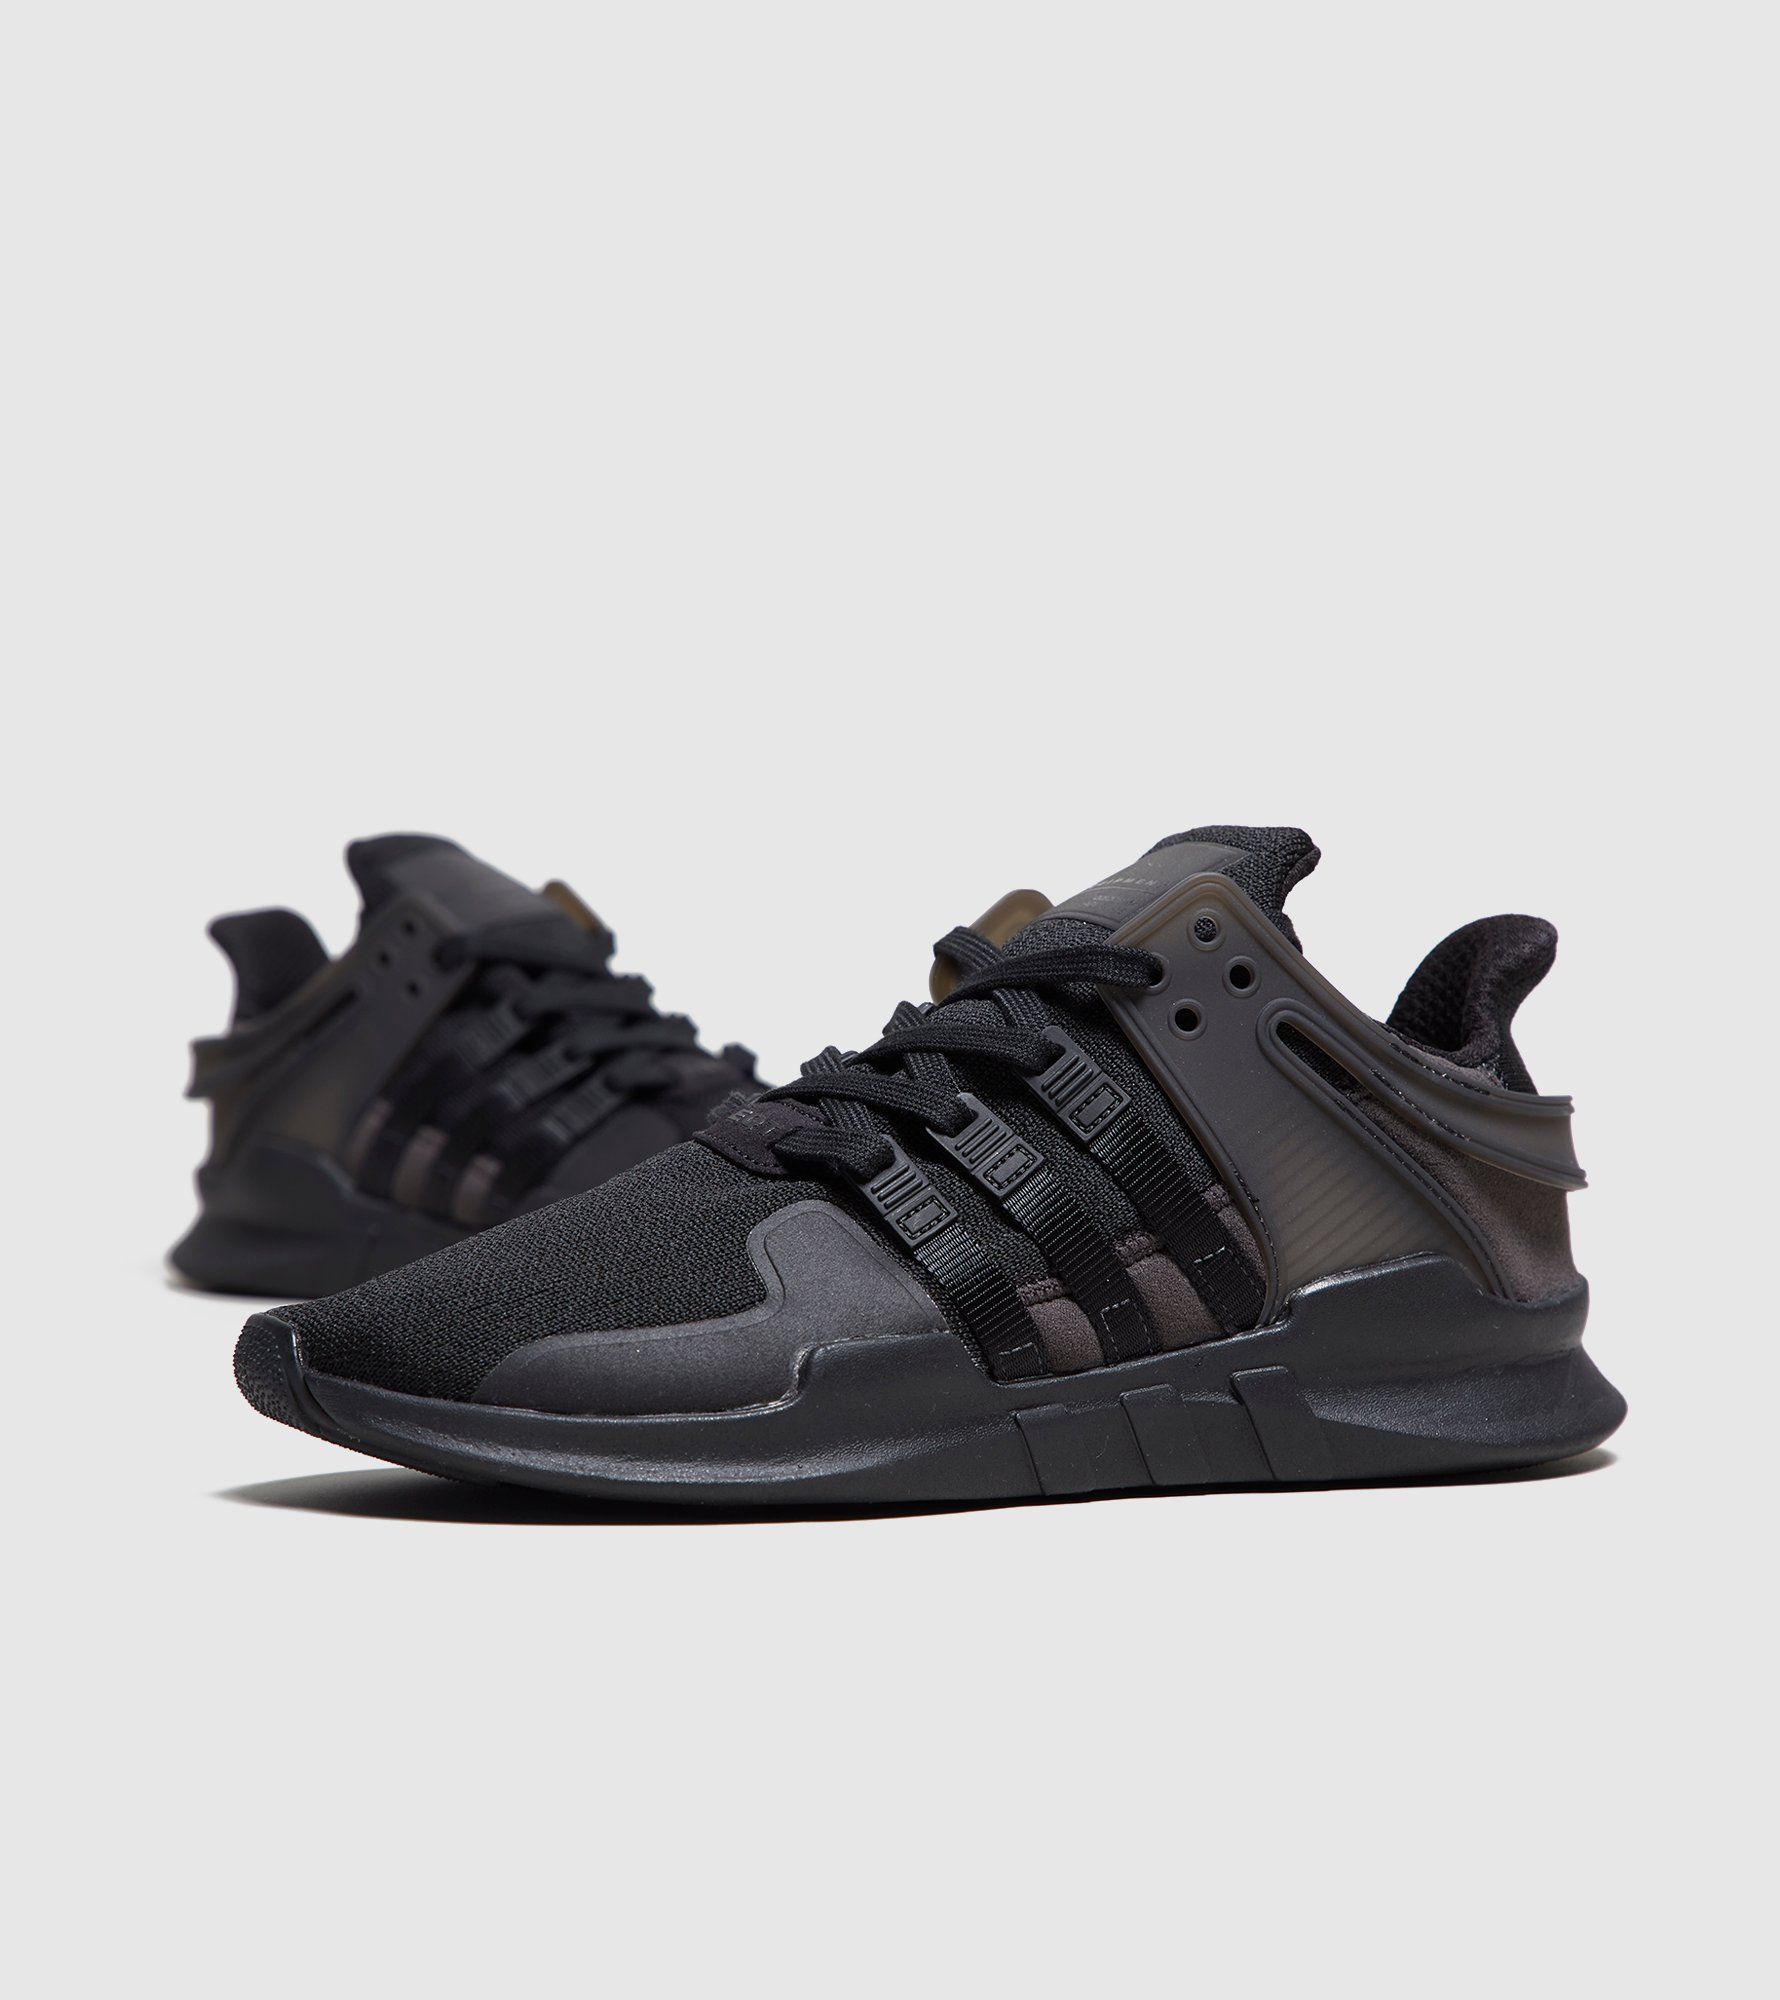 15d8413f2a82 adidas Originals EQT Support ADV - find out more on our site. Find the  freshest